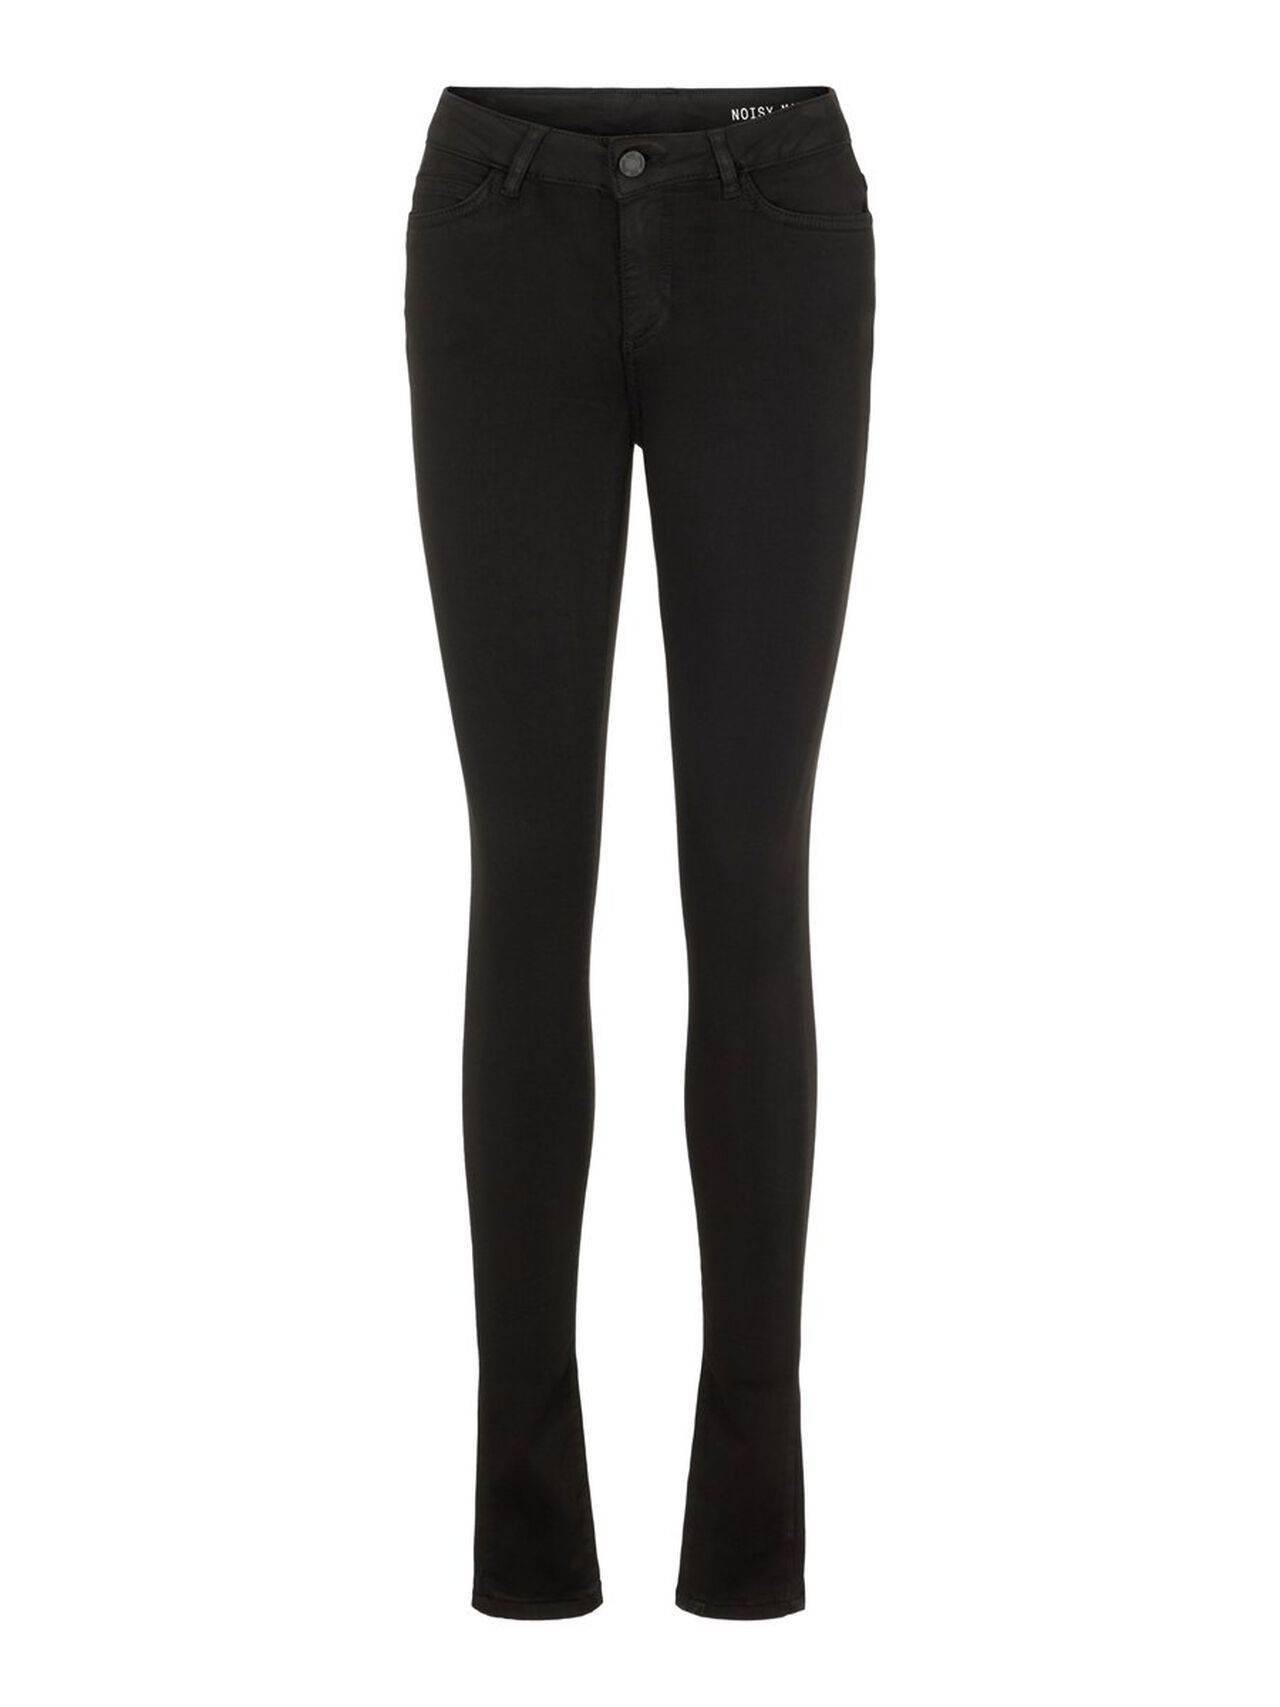 NOISY MAY Lucy Nw Power Shape Skinny Fit Jeans Women Black